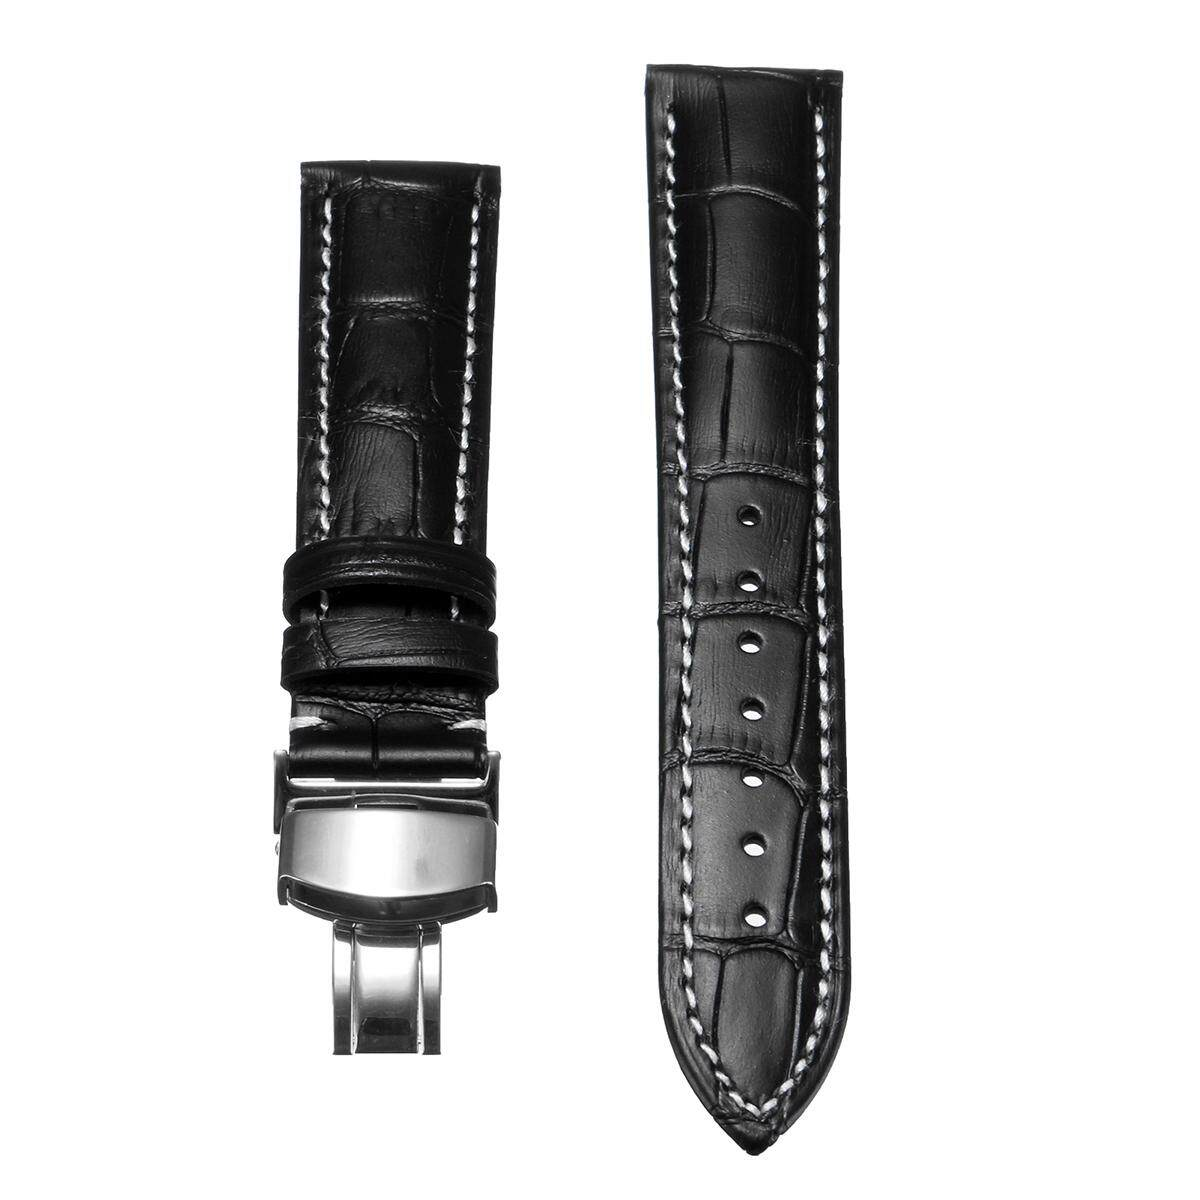 18mm Leather Watch Band Strap Stainless Deployant Style Clasp Black Malaysia